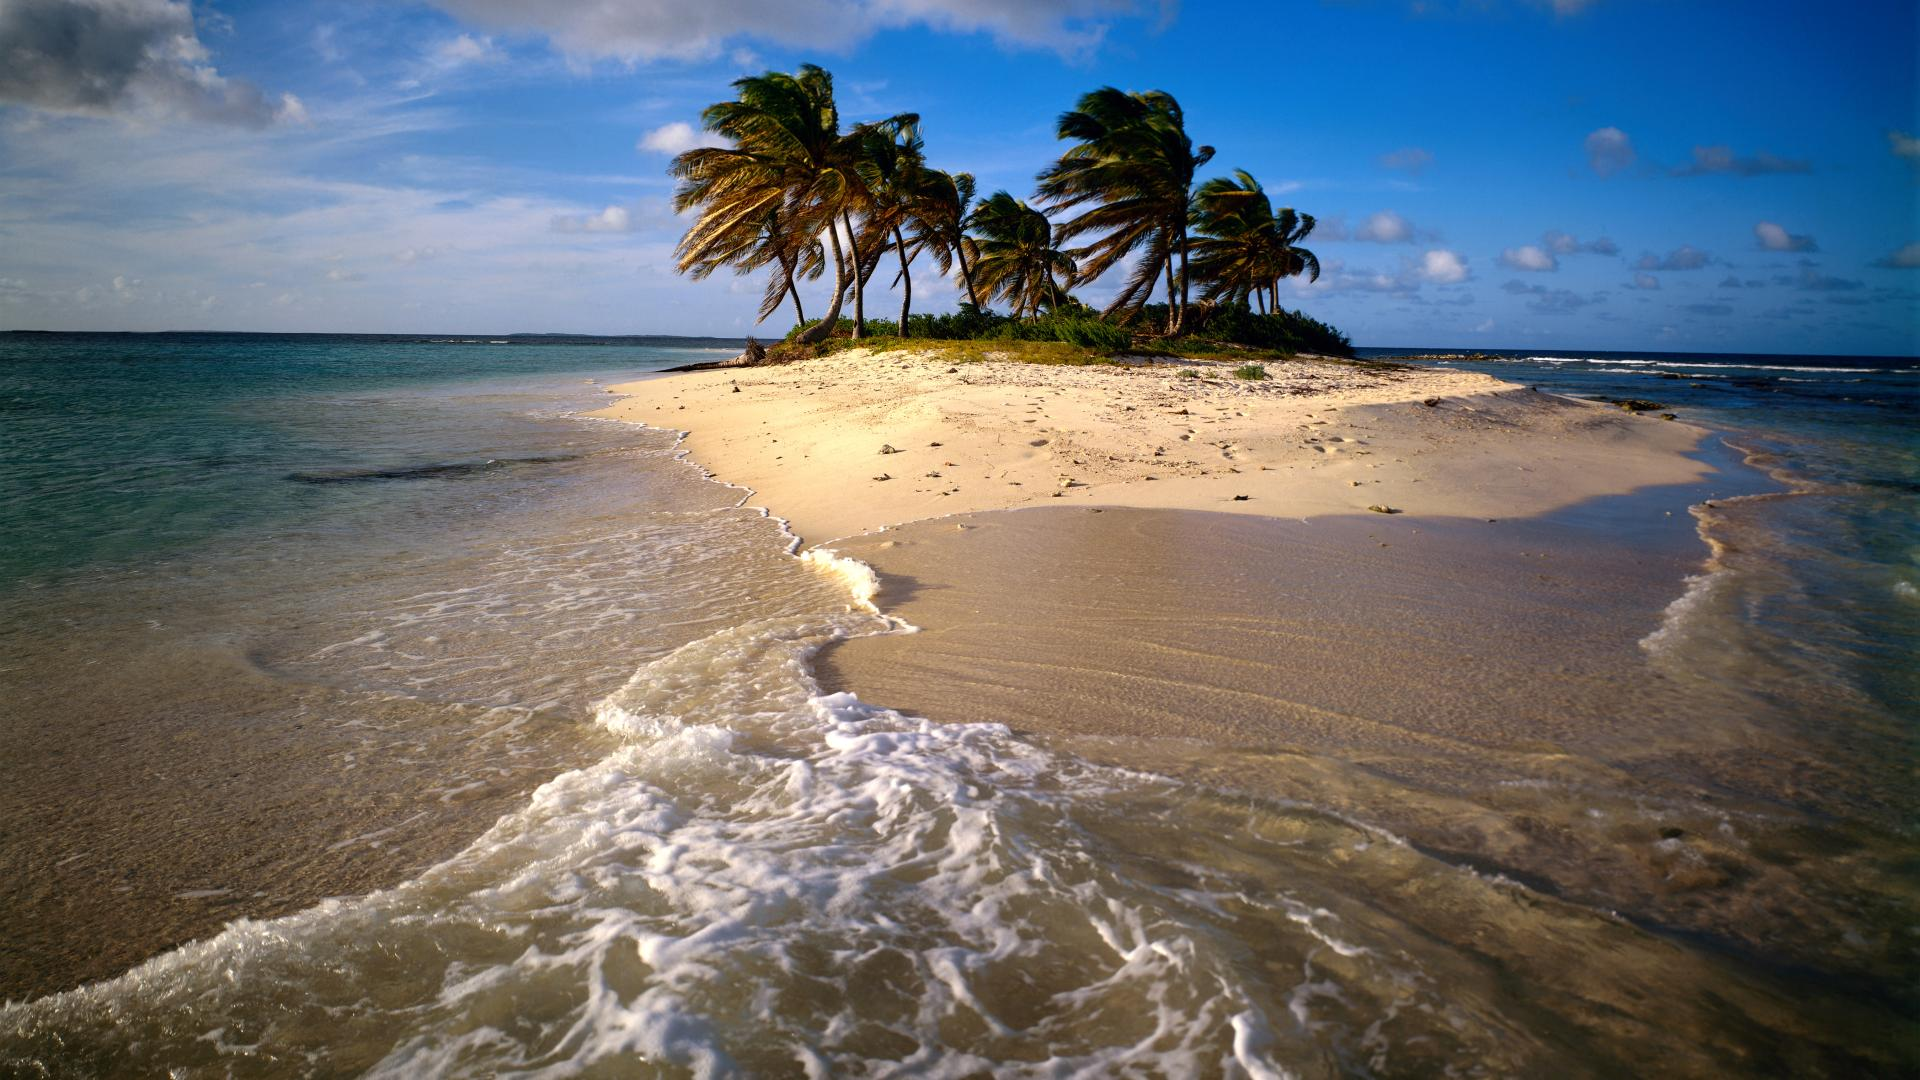 backgrounds desktop caribbean anguilla sandy beach island 1920x1080